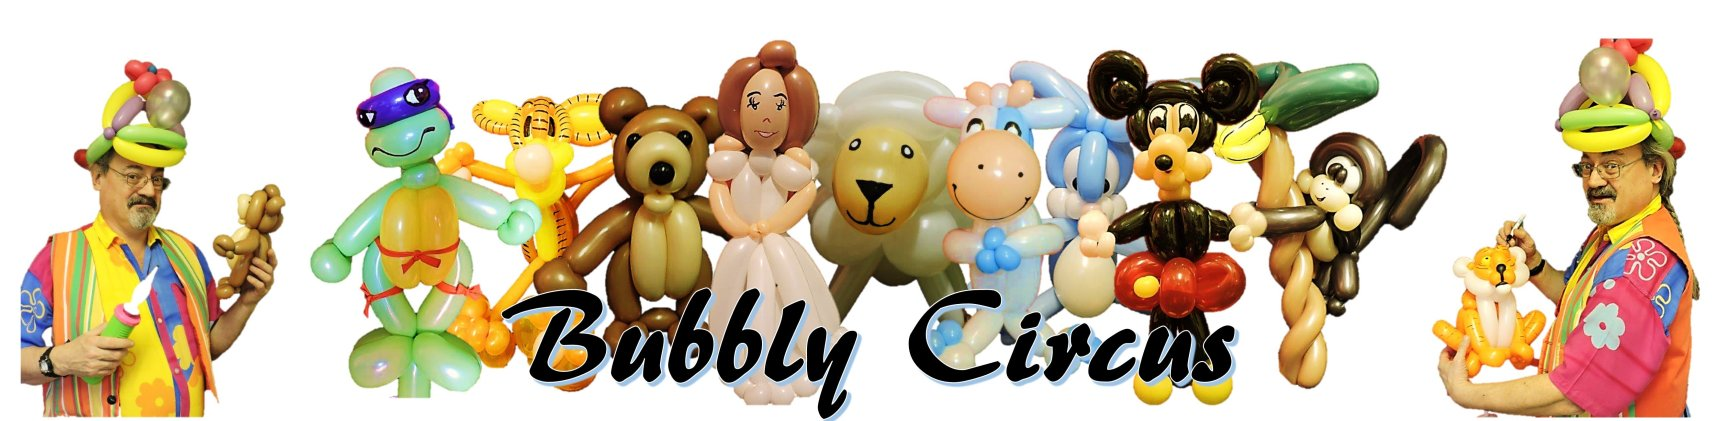 Bubbly Circus Banner